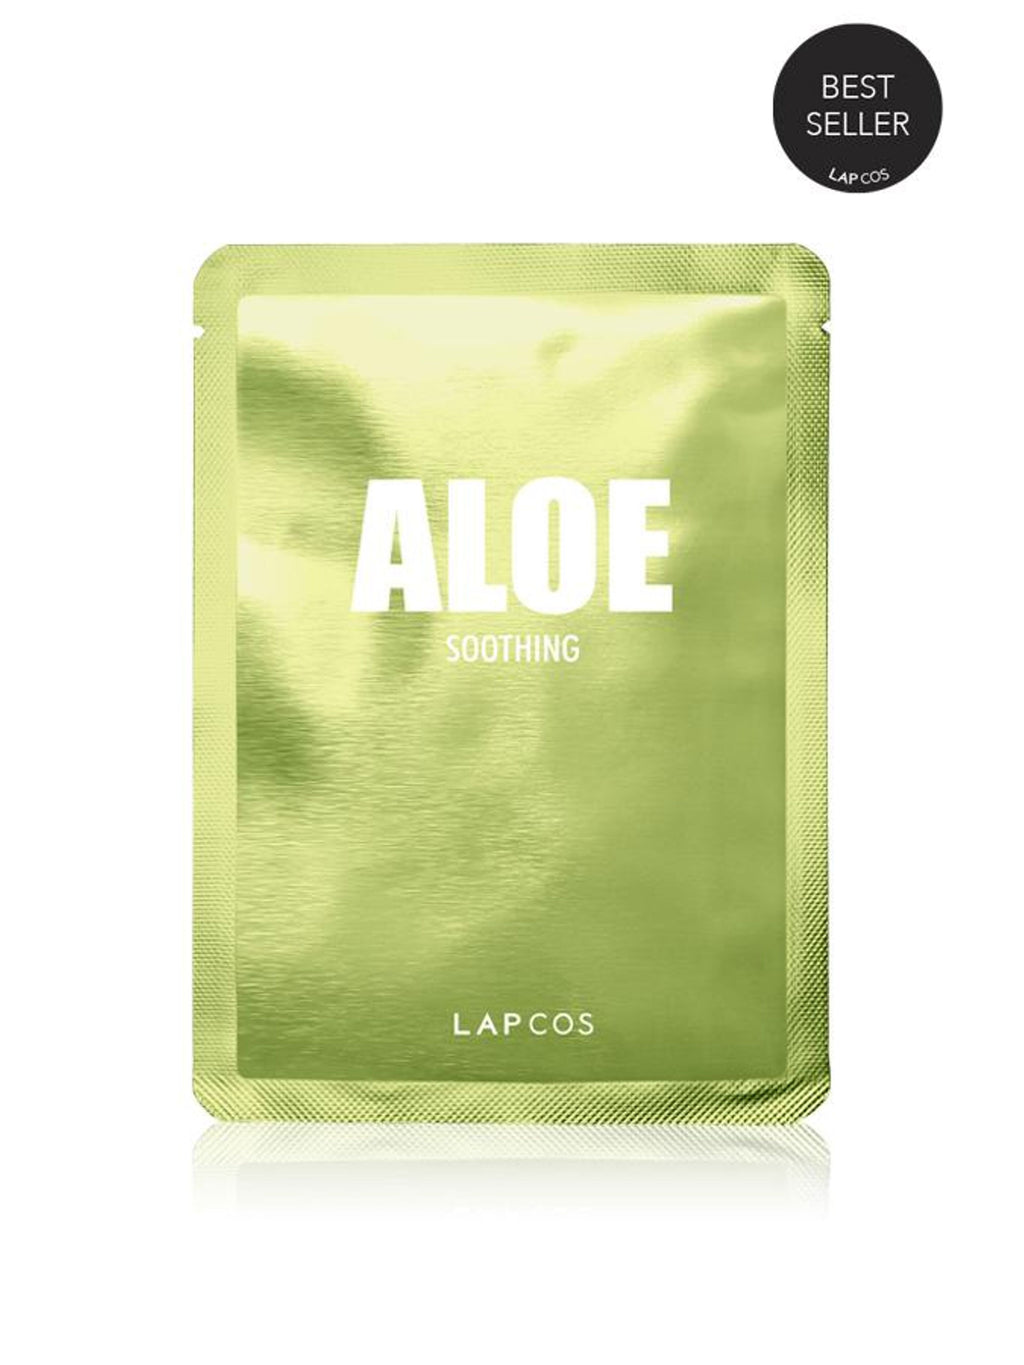 Derma Sheet Mask - Aloe